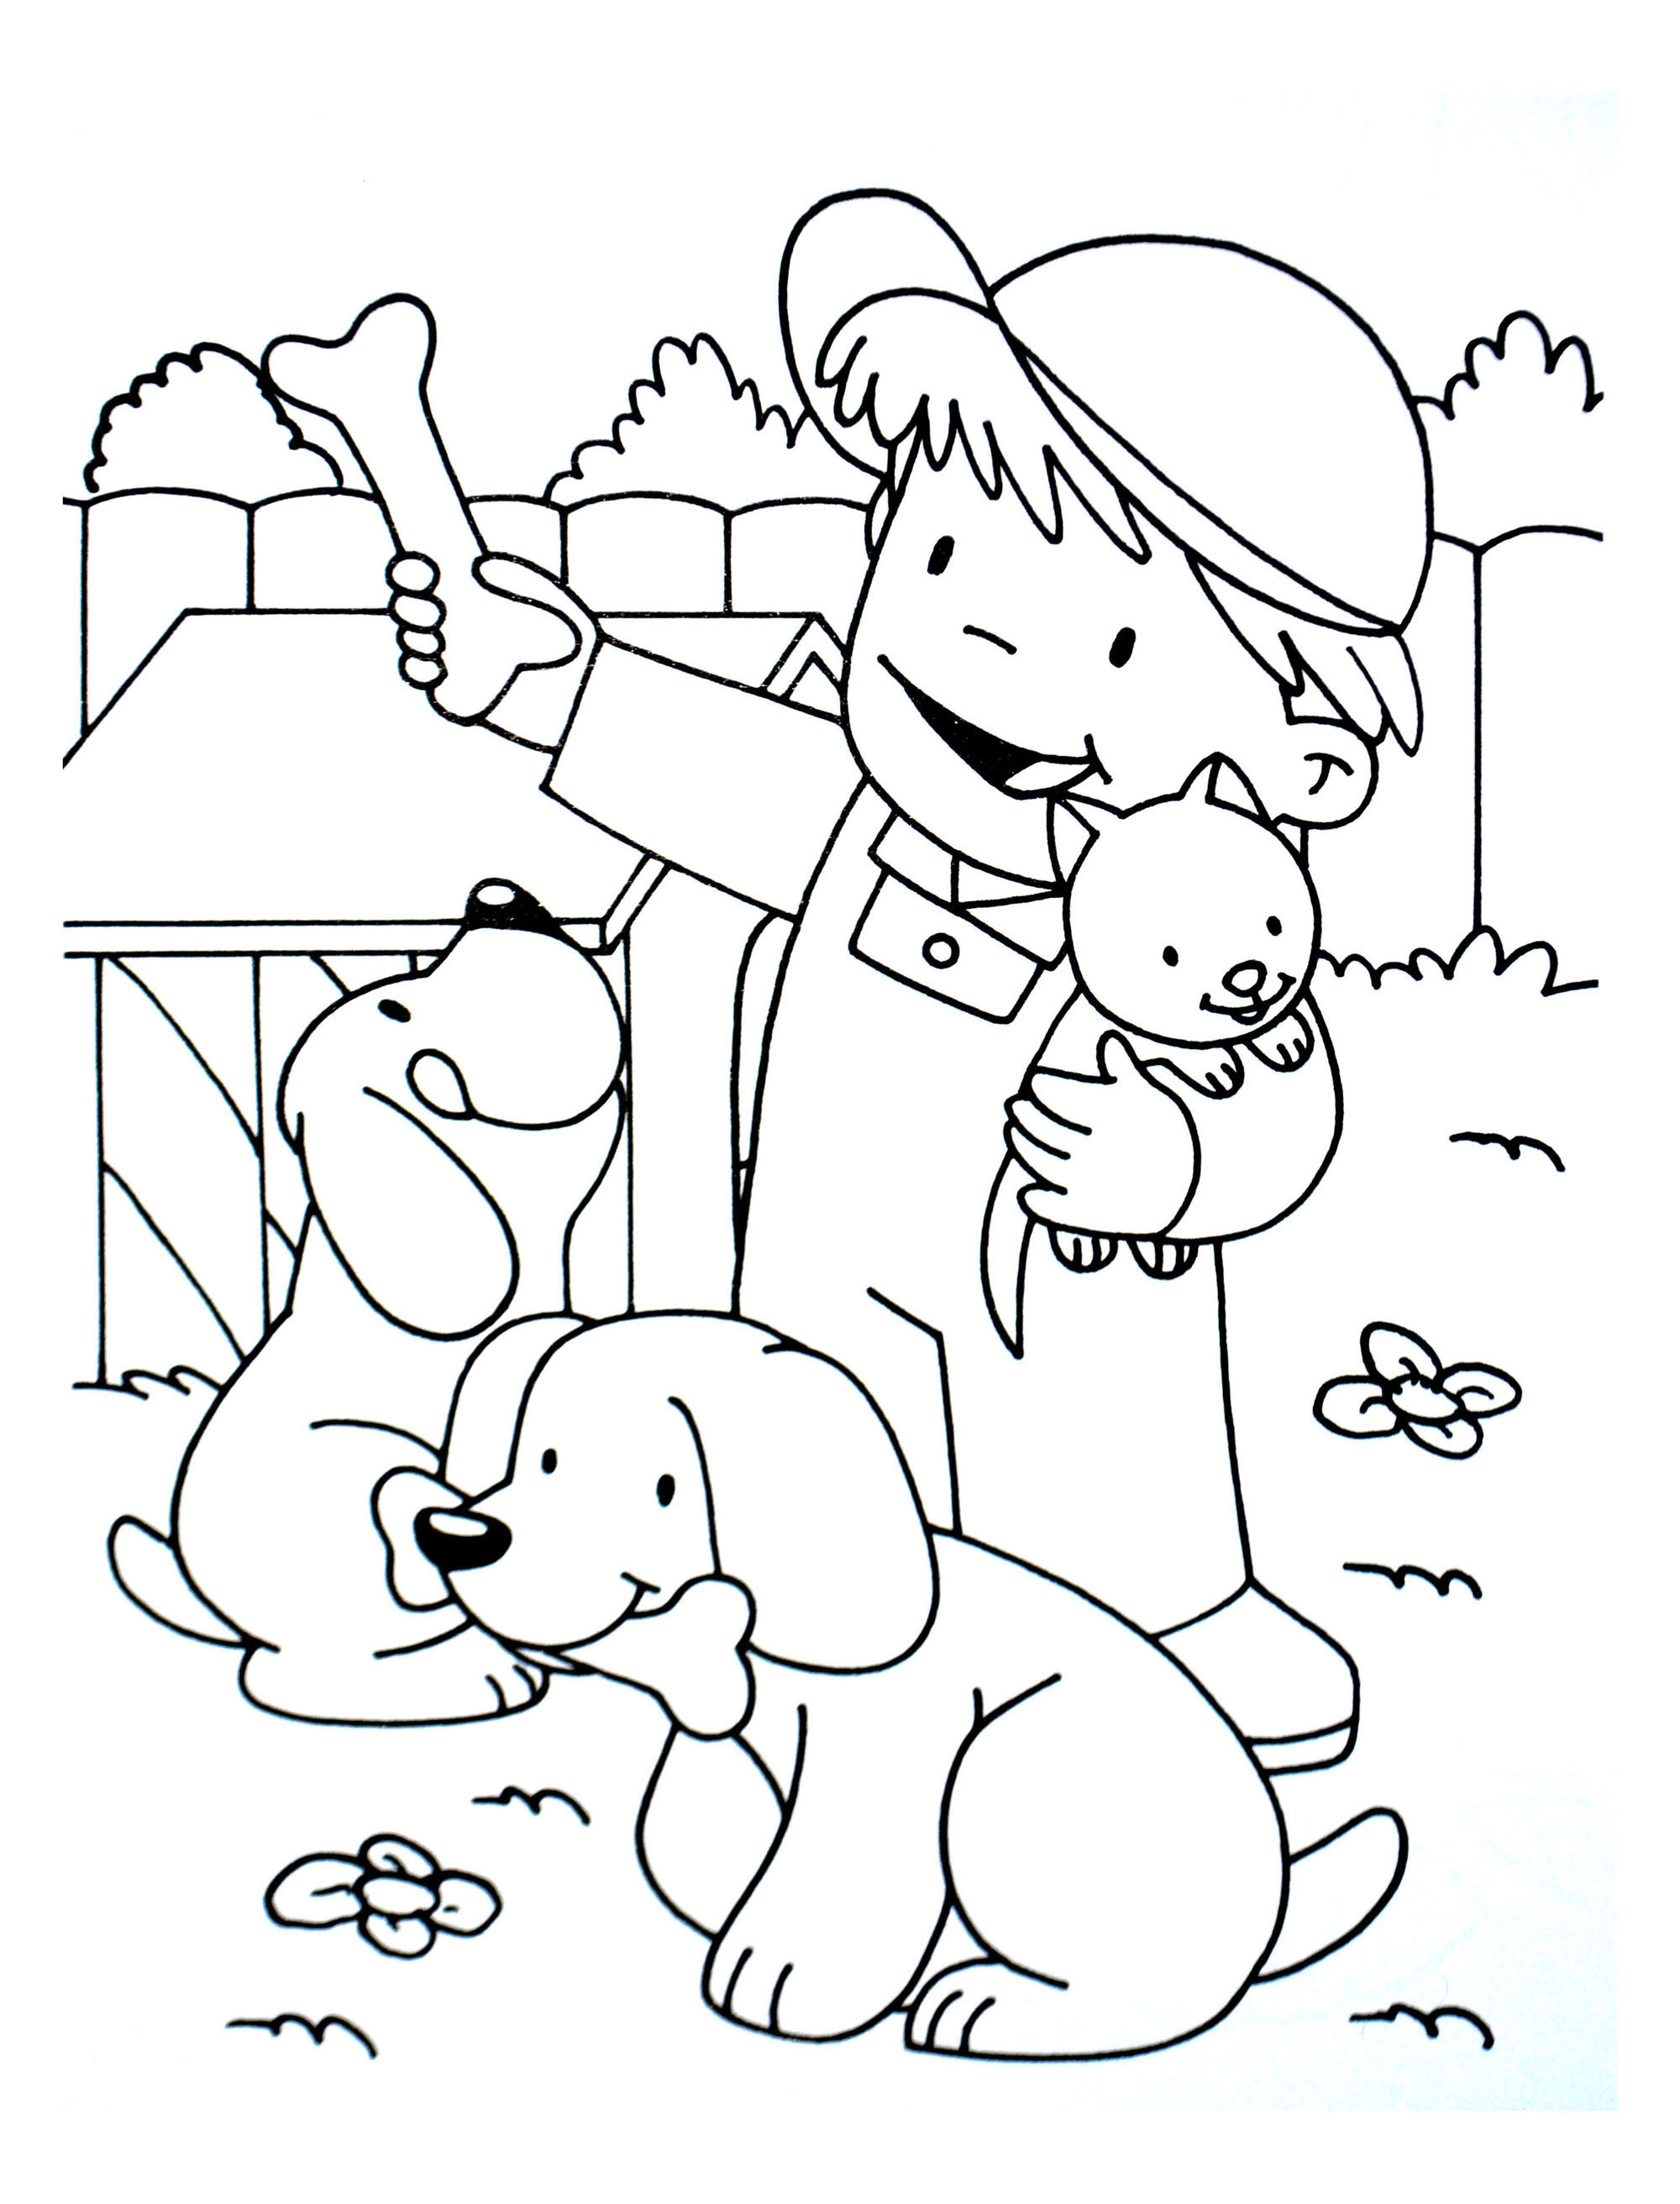 Two Dogs Coloring Pages At Getdrawings